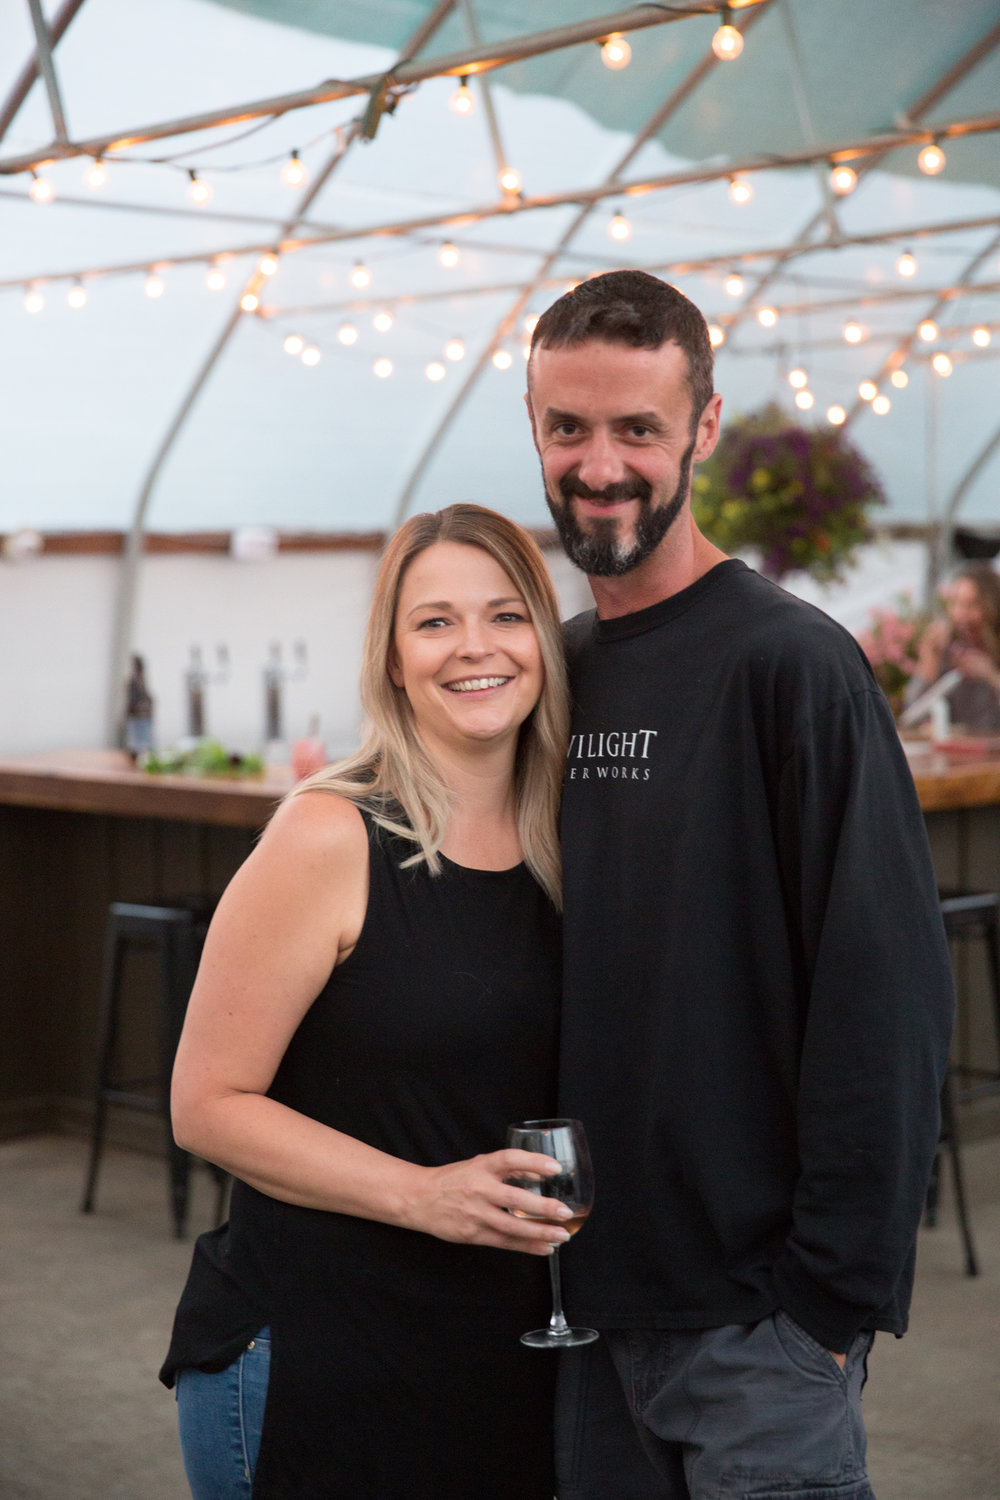 Will and Jackie, owners of Twilight Cider